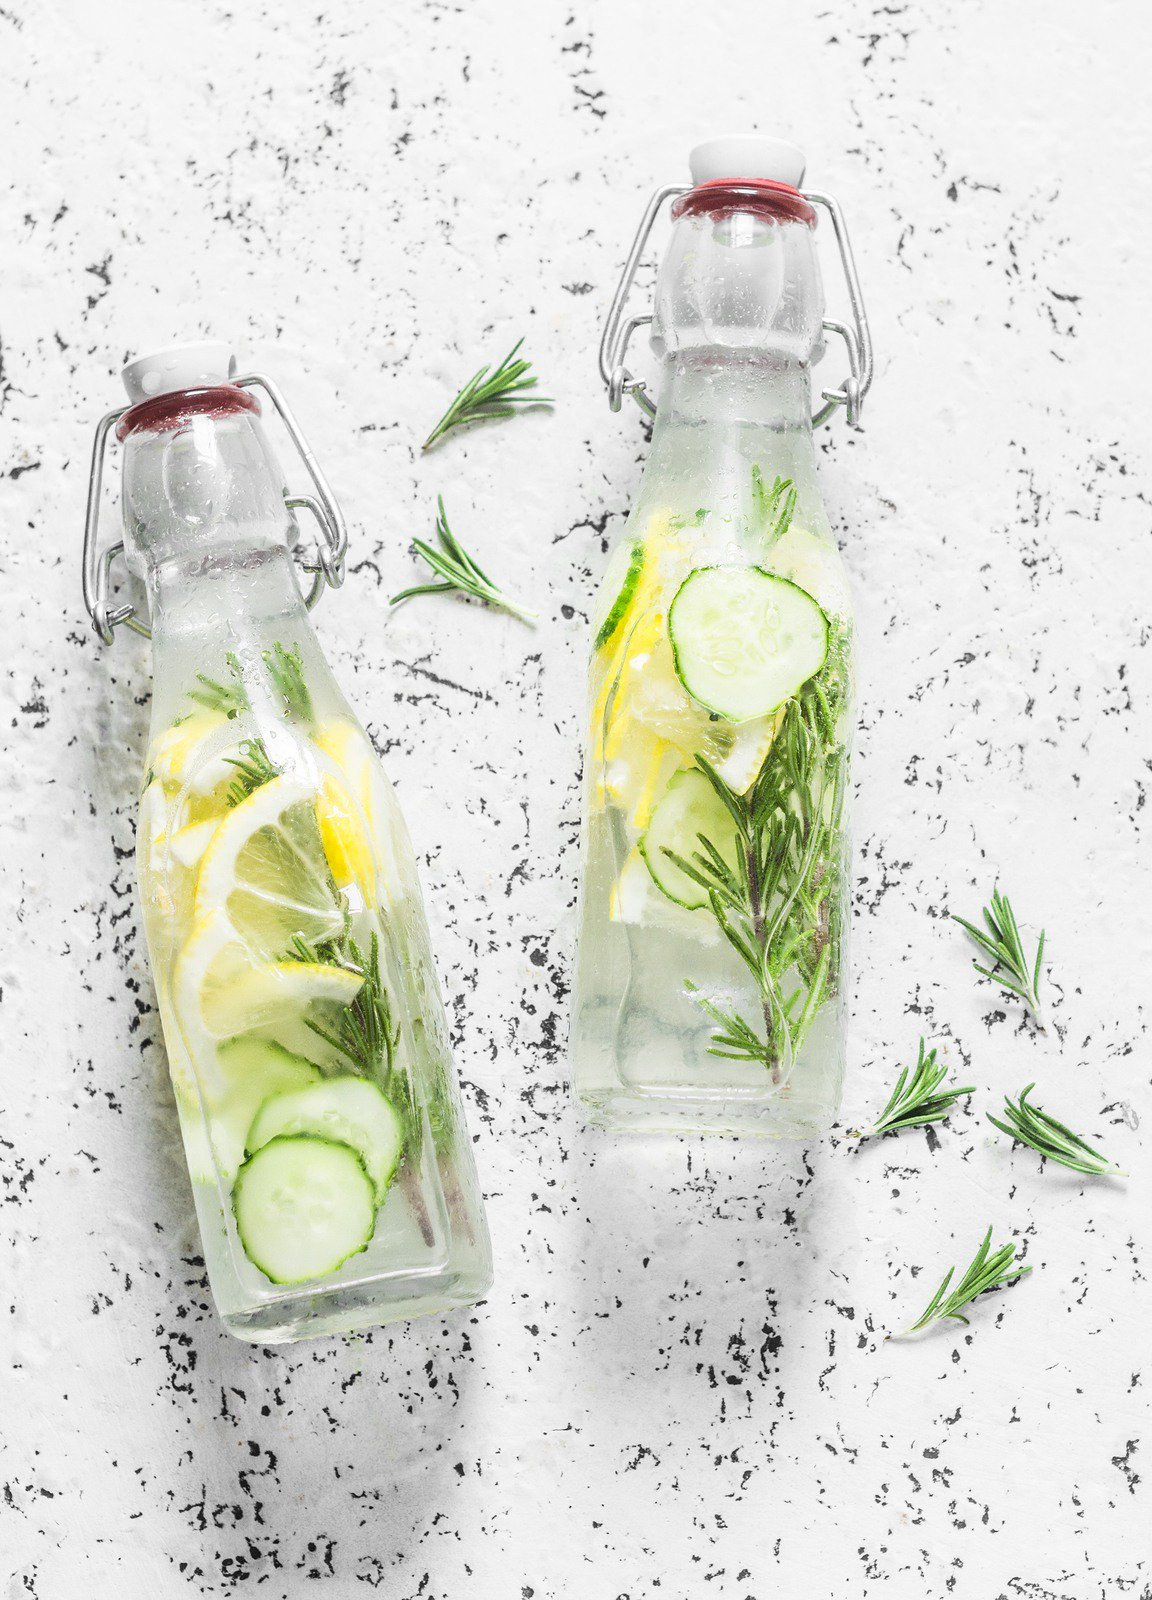 Find easy cucumber water recipes with health benefits here.